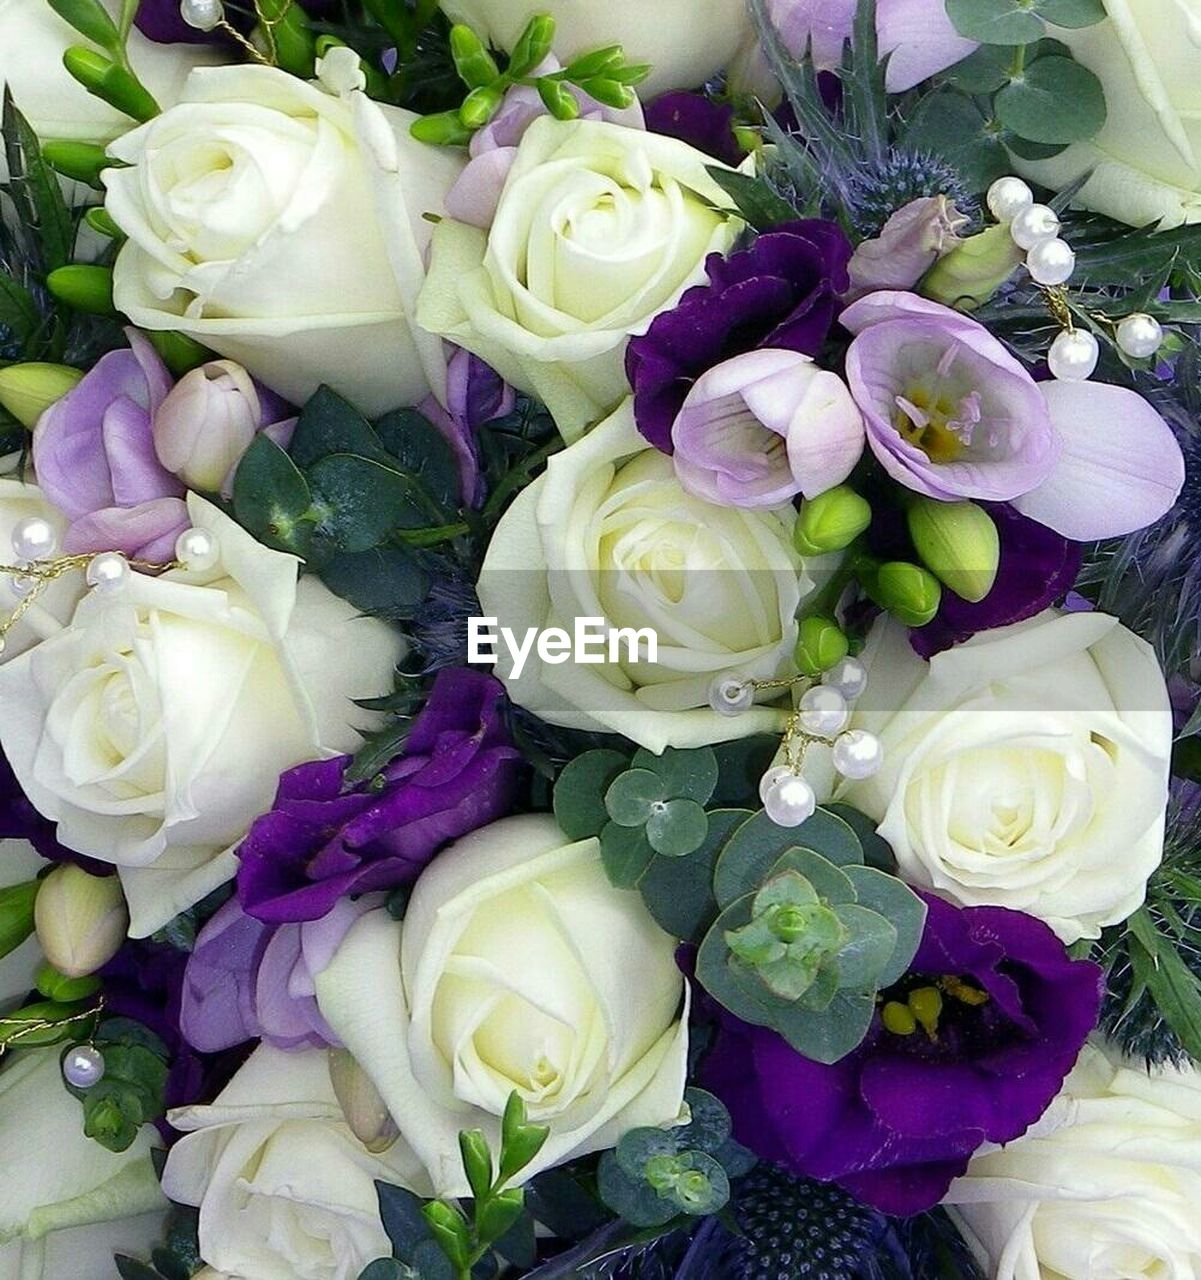 flower, freshness, rose - flower, beauty in nature, purple, petal, fragility, bouquet, flower head, no people, high angle view, close-up, indoors, nature, day